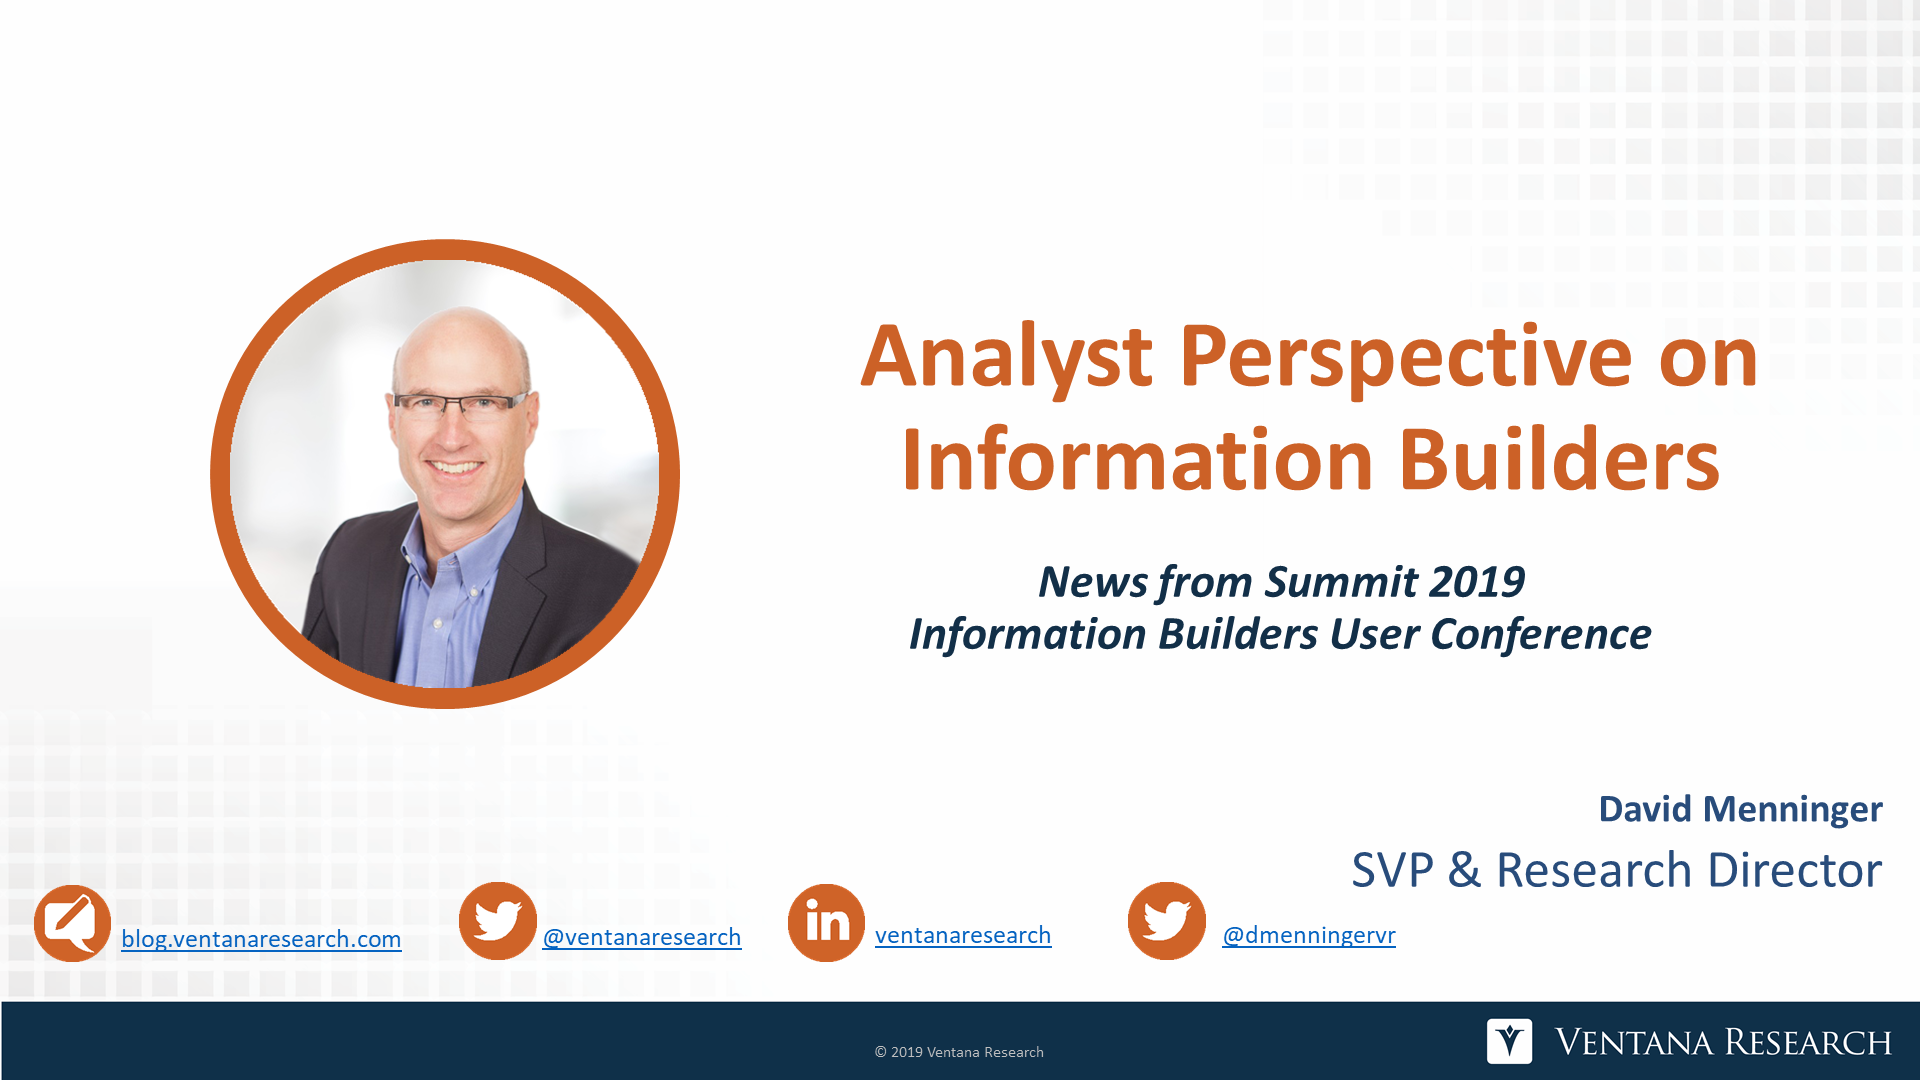 Ventana_Research-David_Menninger-Information_Builders_Summit_2019-Analyst_Perspective